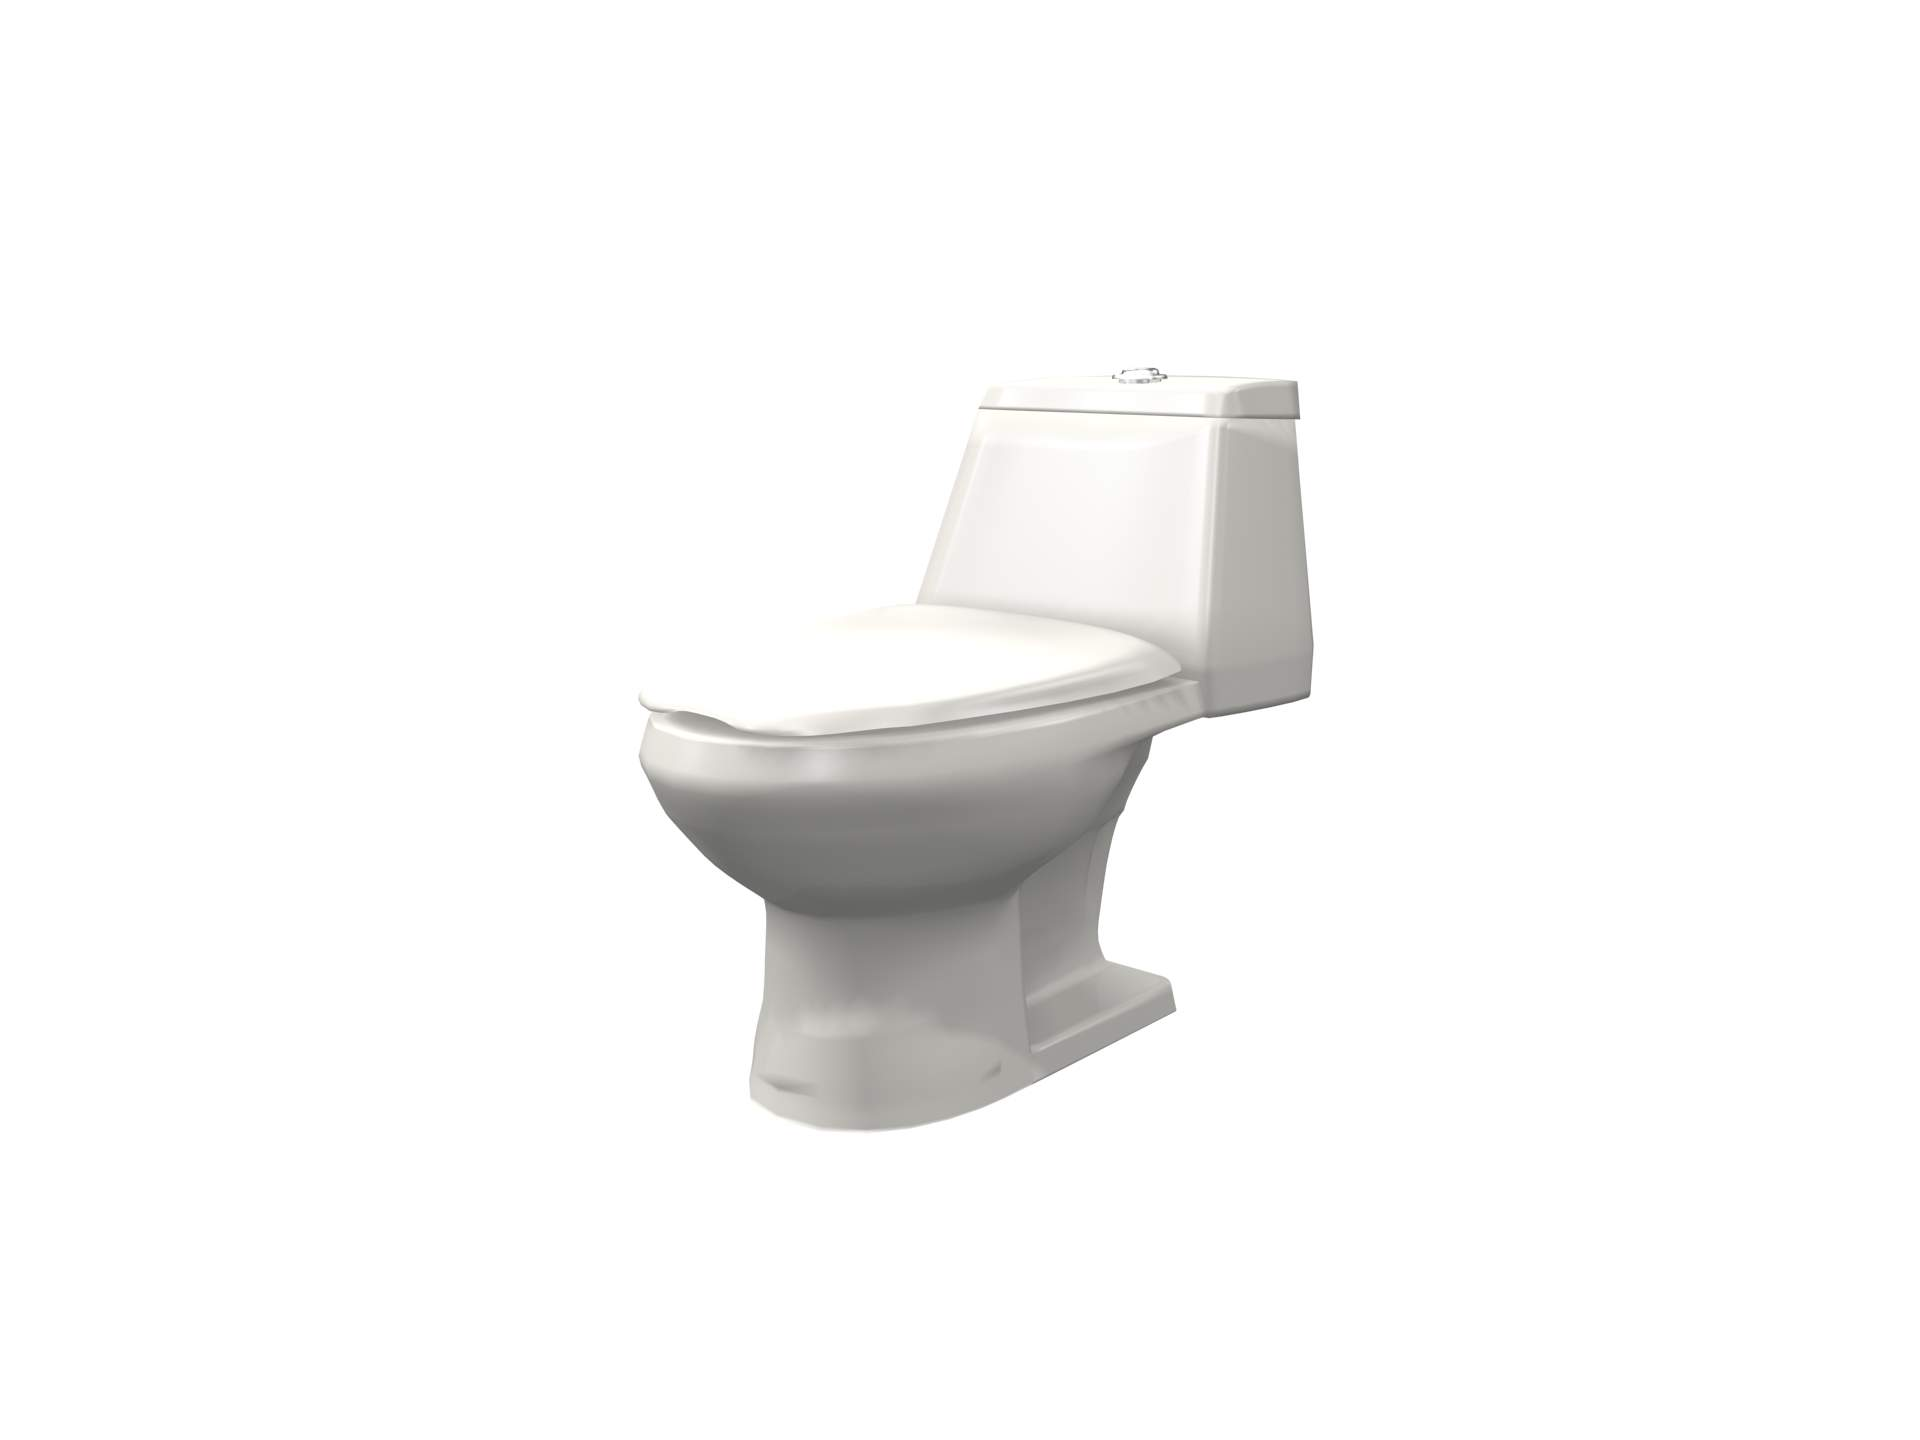 bathroom – Toilet 014 3D Model